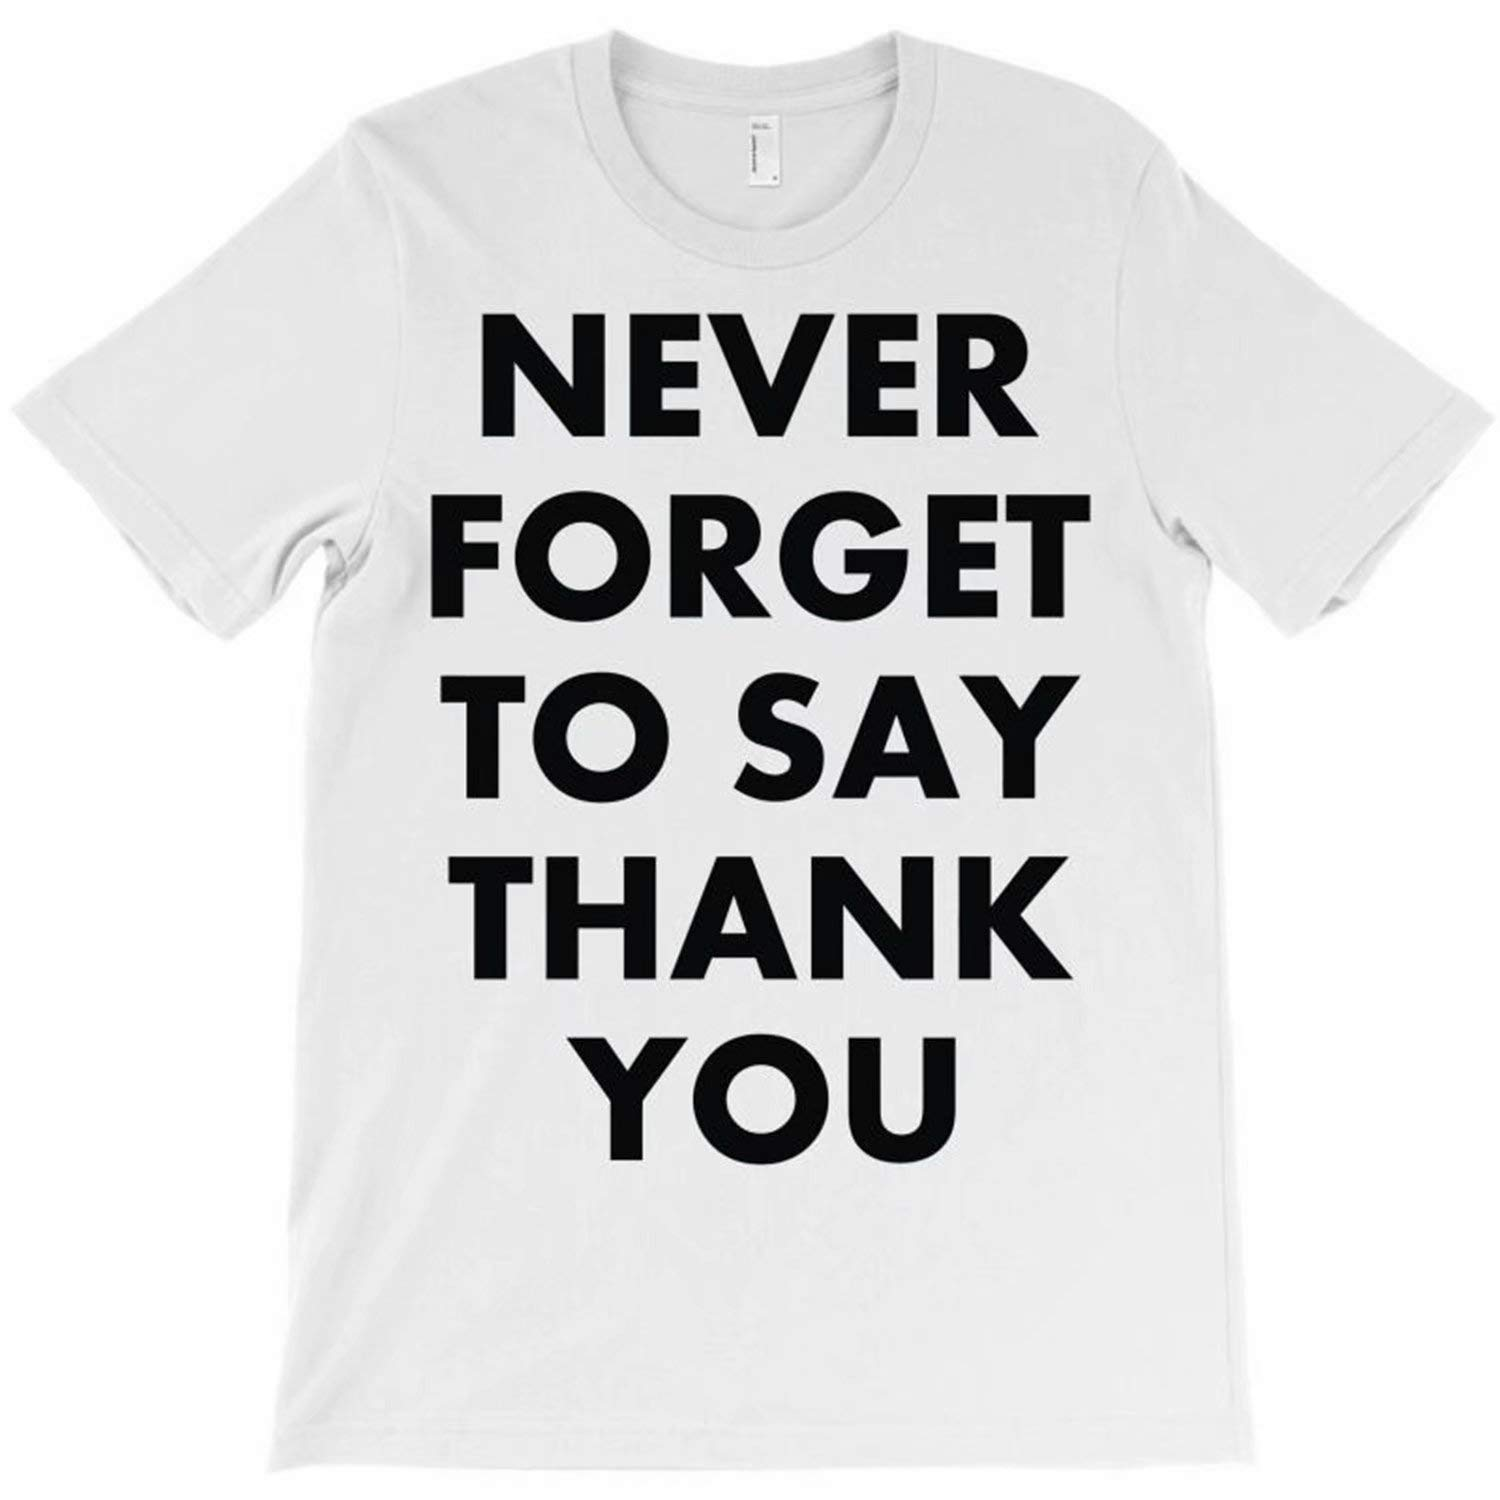 Hocoo Infant Boys Girls Summer Shirt Never Forget to Say Thank You T-Shirt